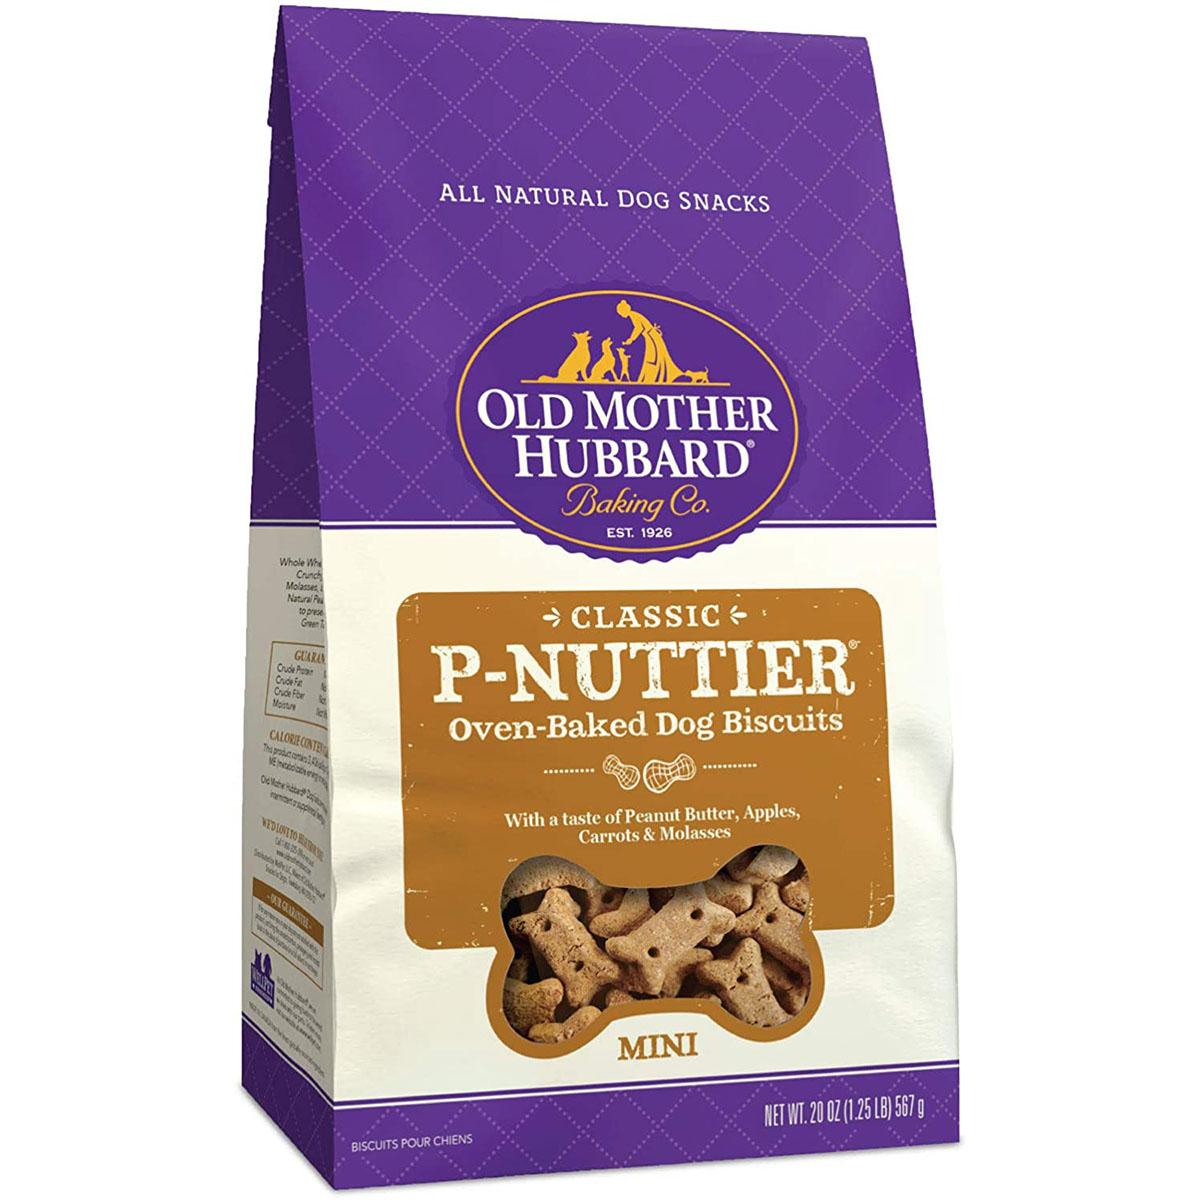 Old Mother Hubbard Classic Mini P-Nuttier Biscuits Baked Dog Treats